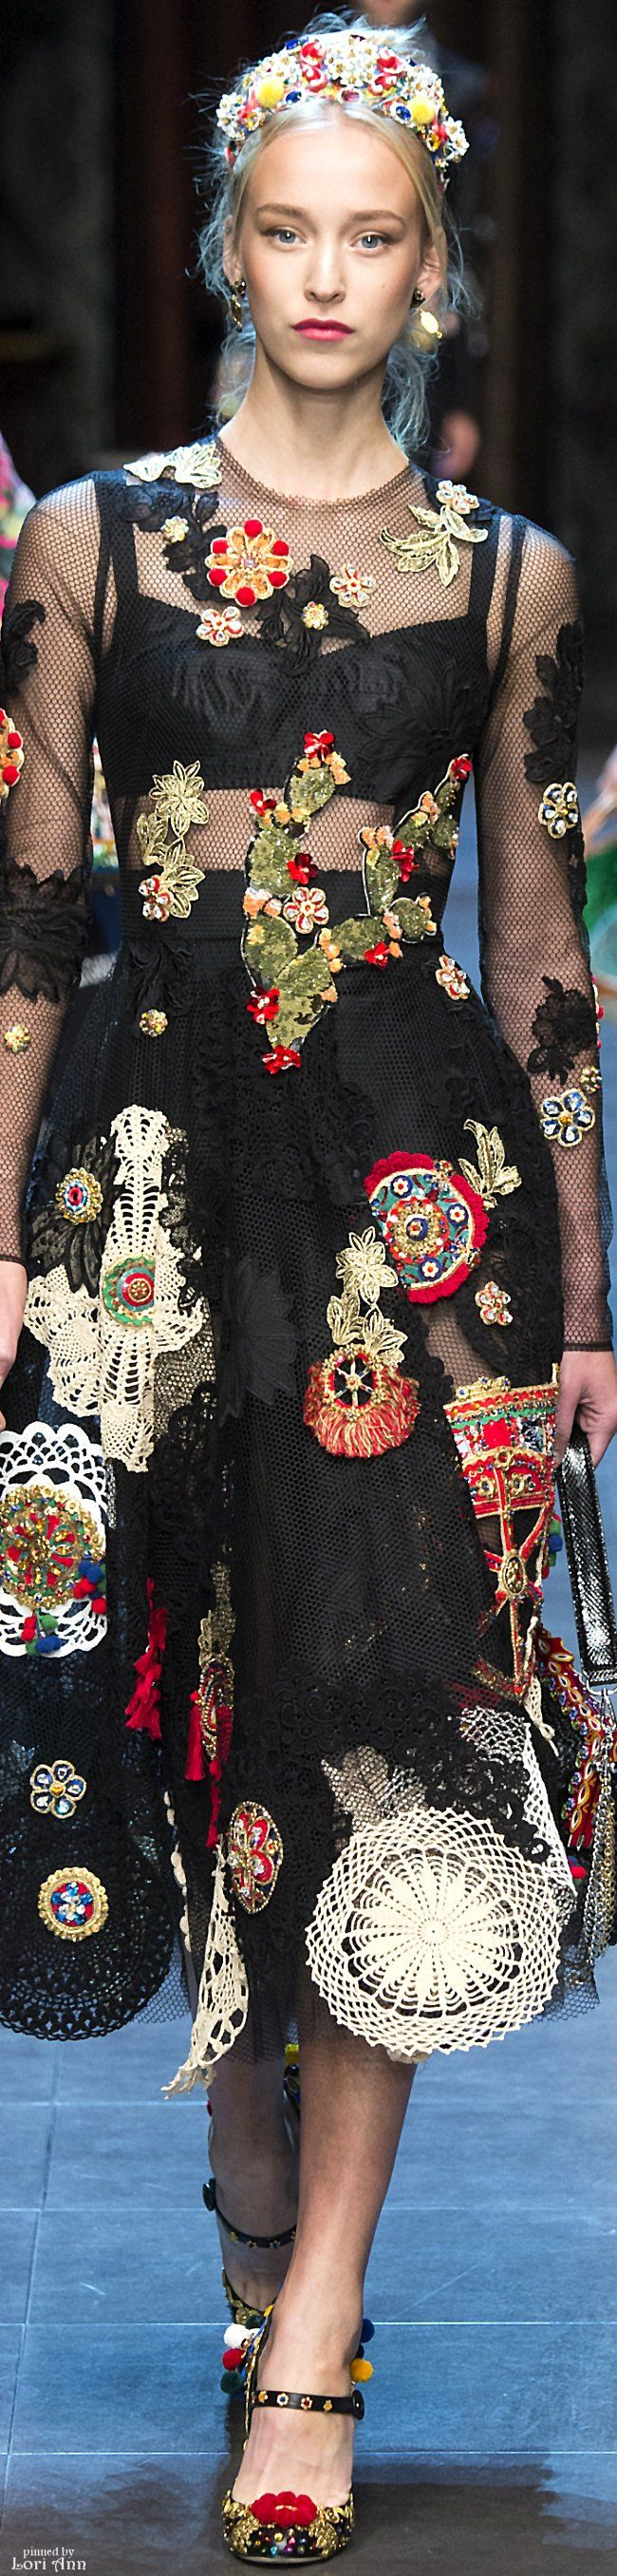 Dolce & Gabbana Spring 2016 RTW~ always inventive and creative. Colorful motto ifs give a pop of color and texture to basic black.m